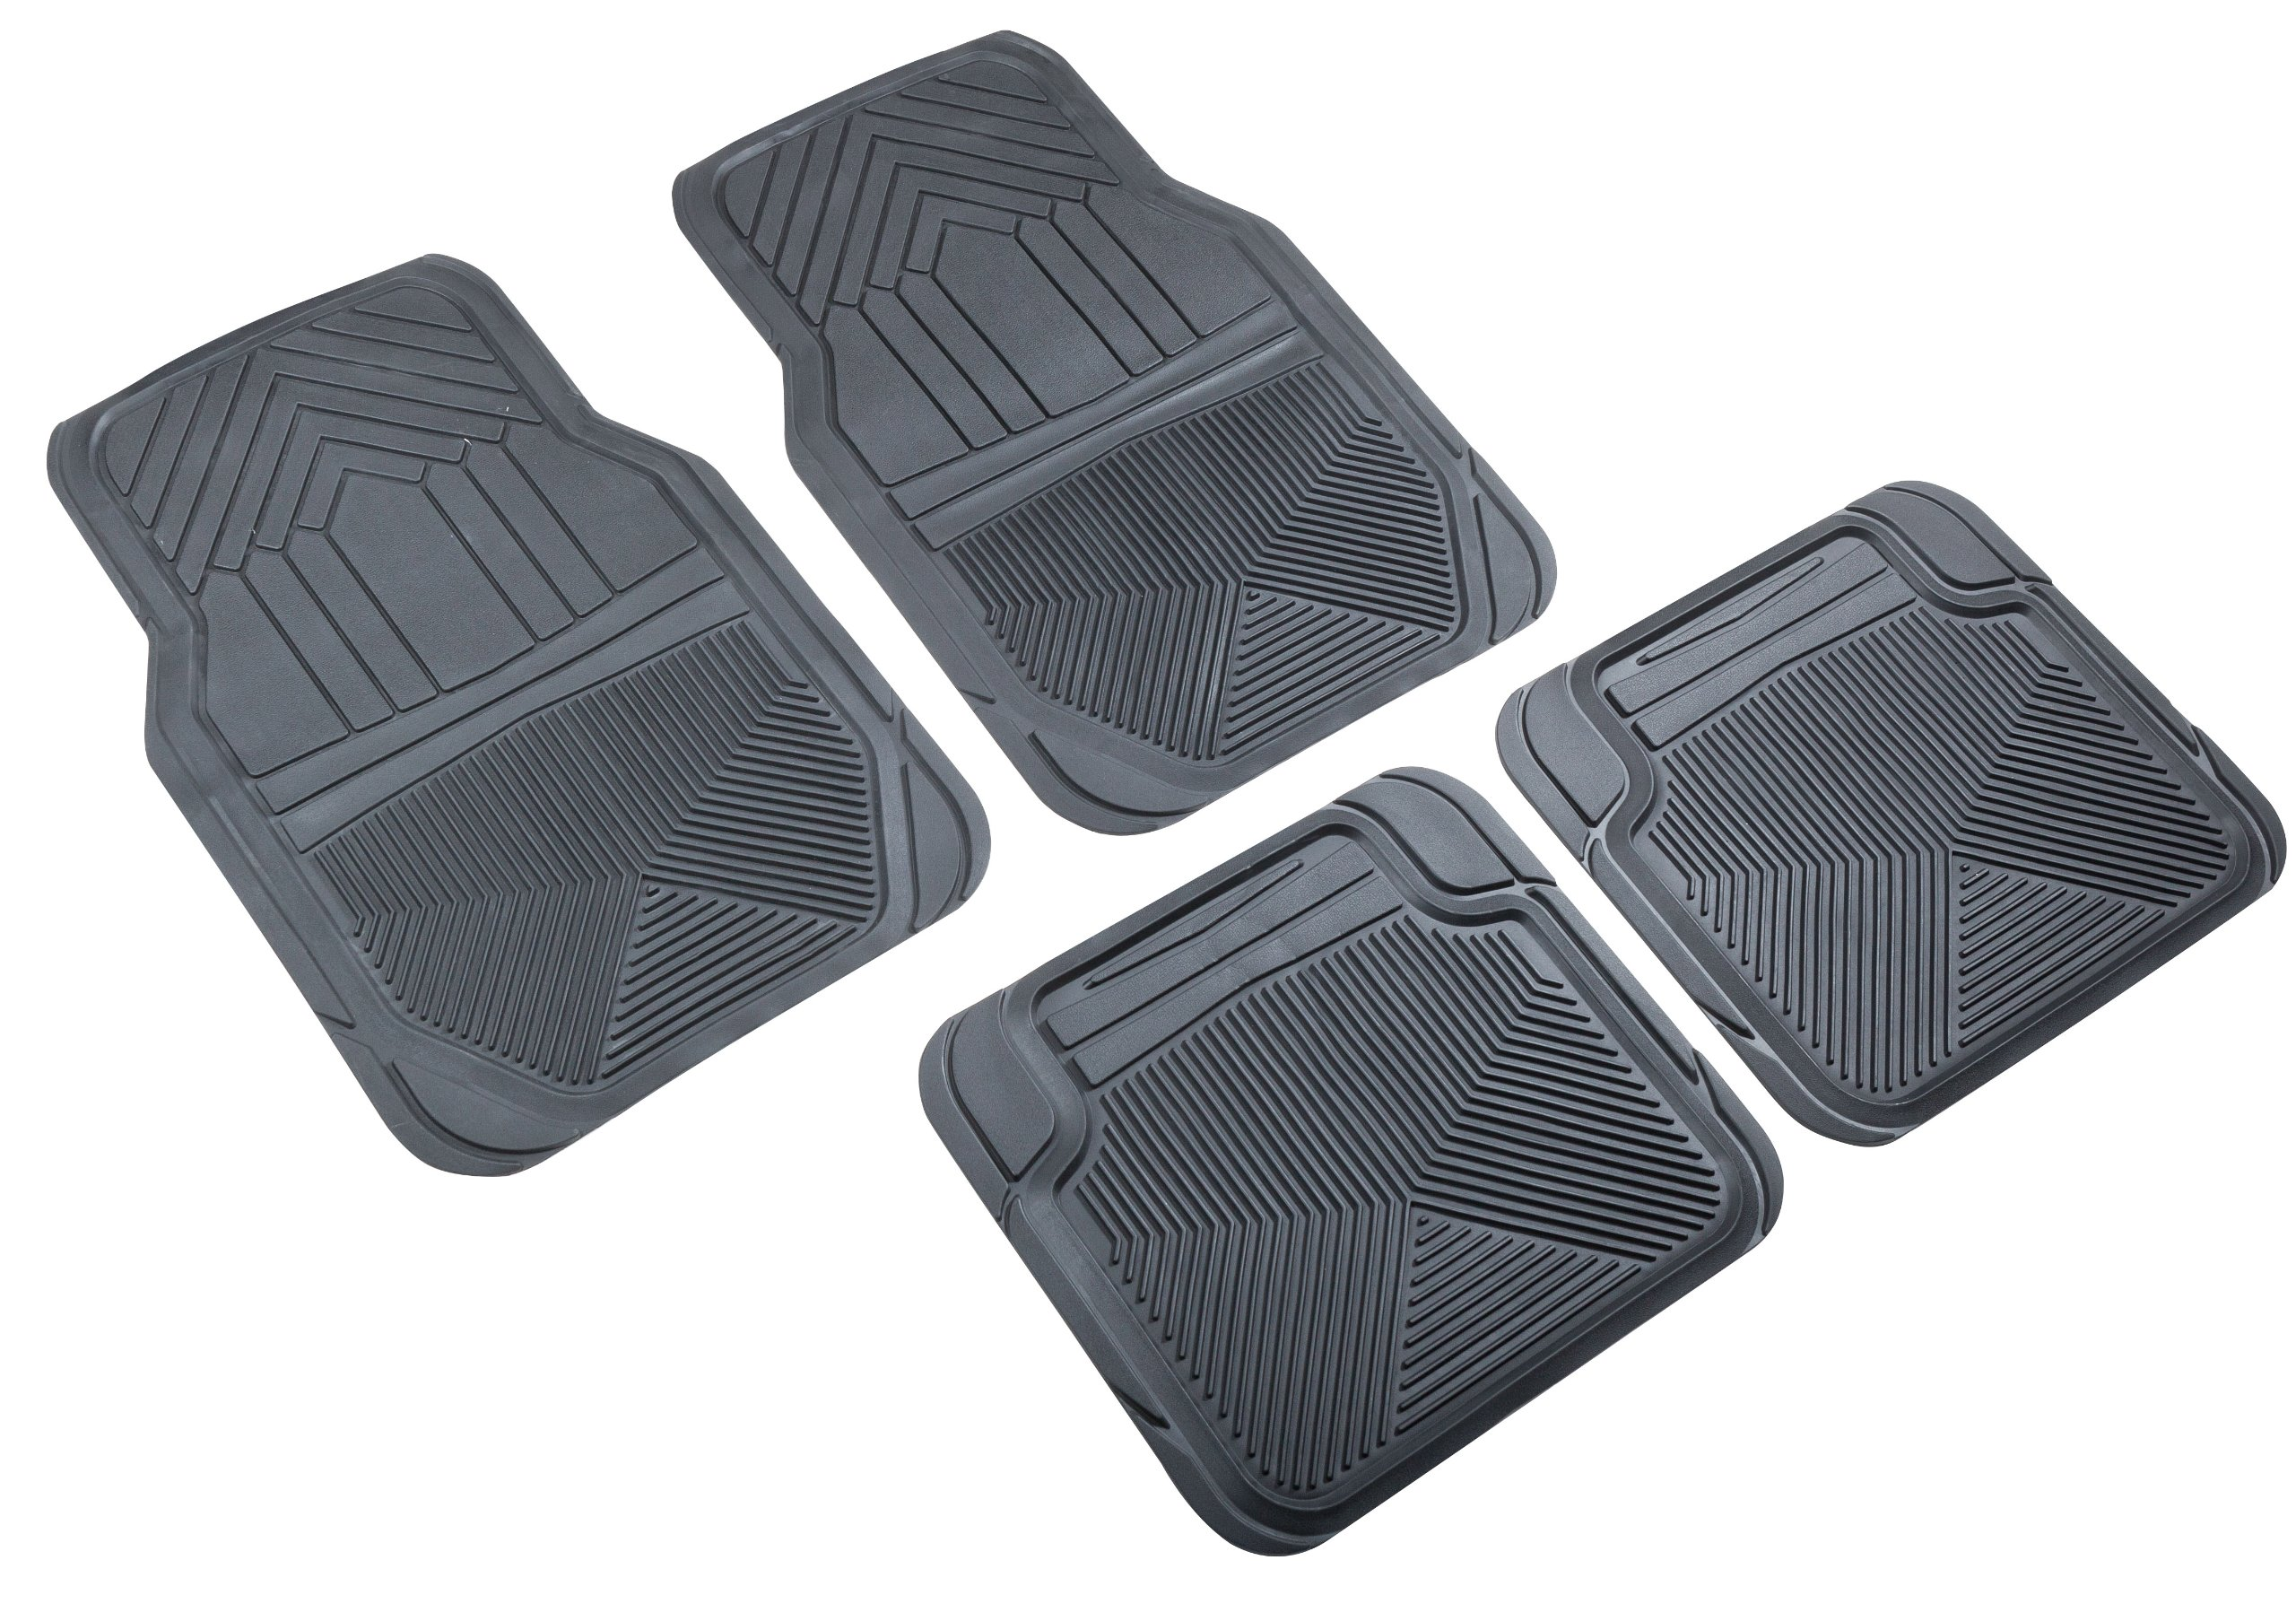 Highland 4647800 Weather Fortress Black Premium Synthetic All Weather Floor Mat - 4 Piece by Highland (Image #1)